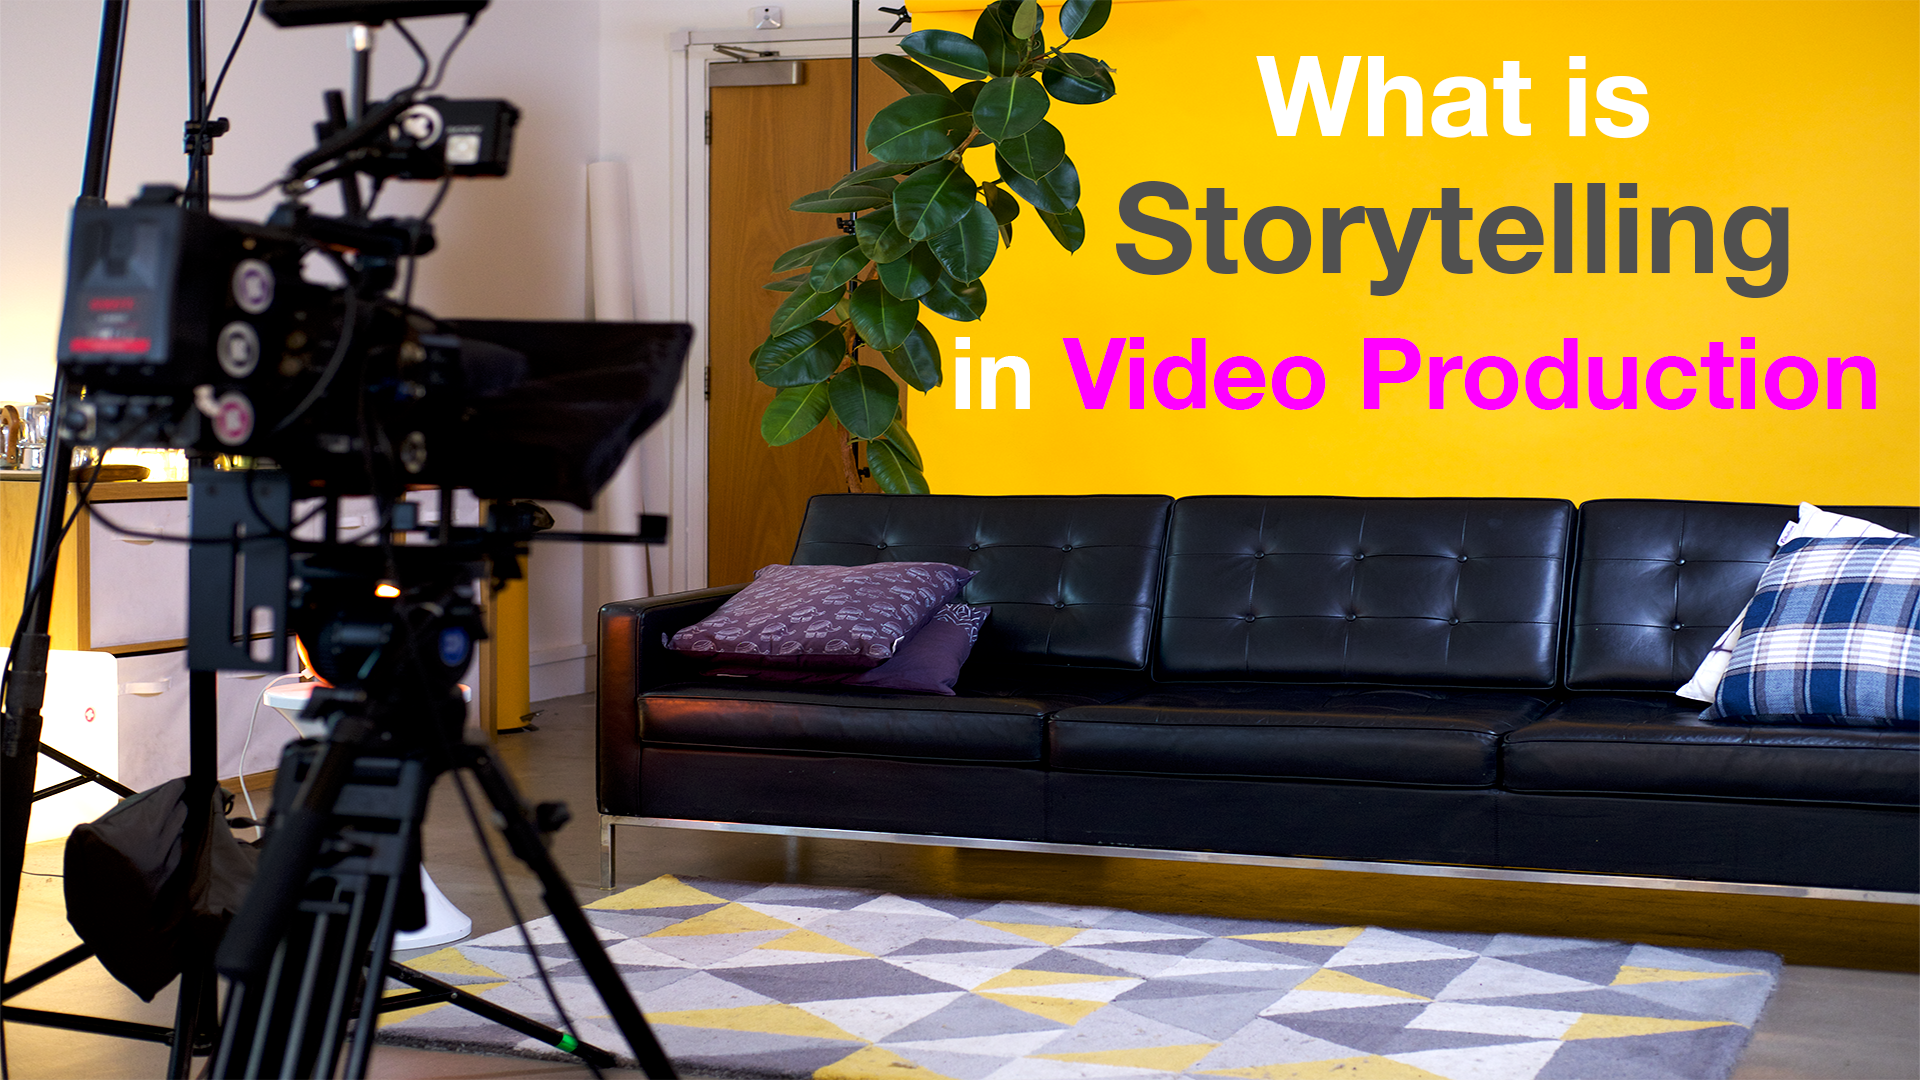 What is Storytelling in Video Production